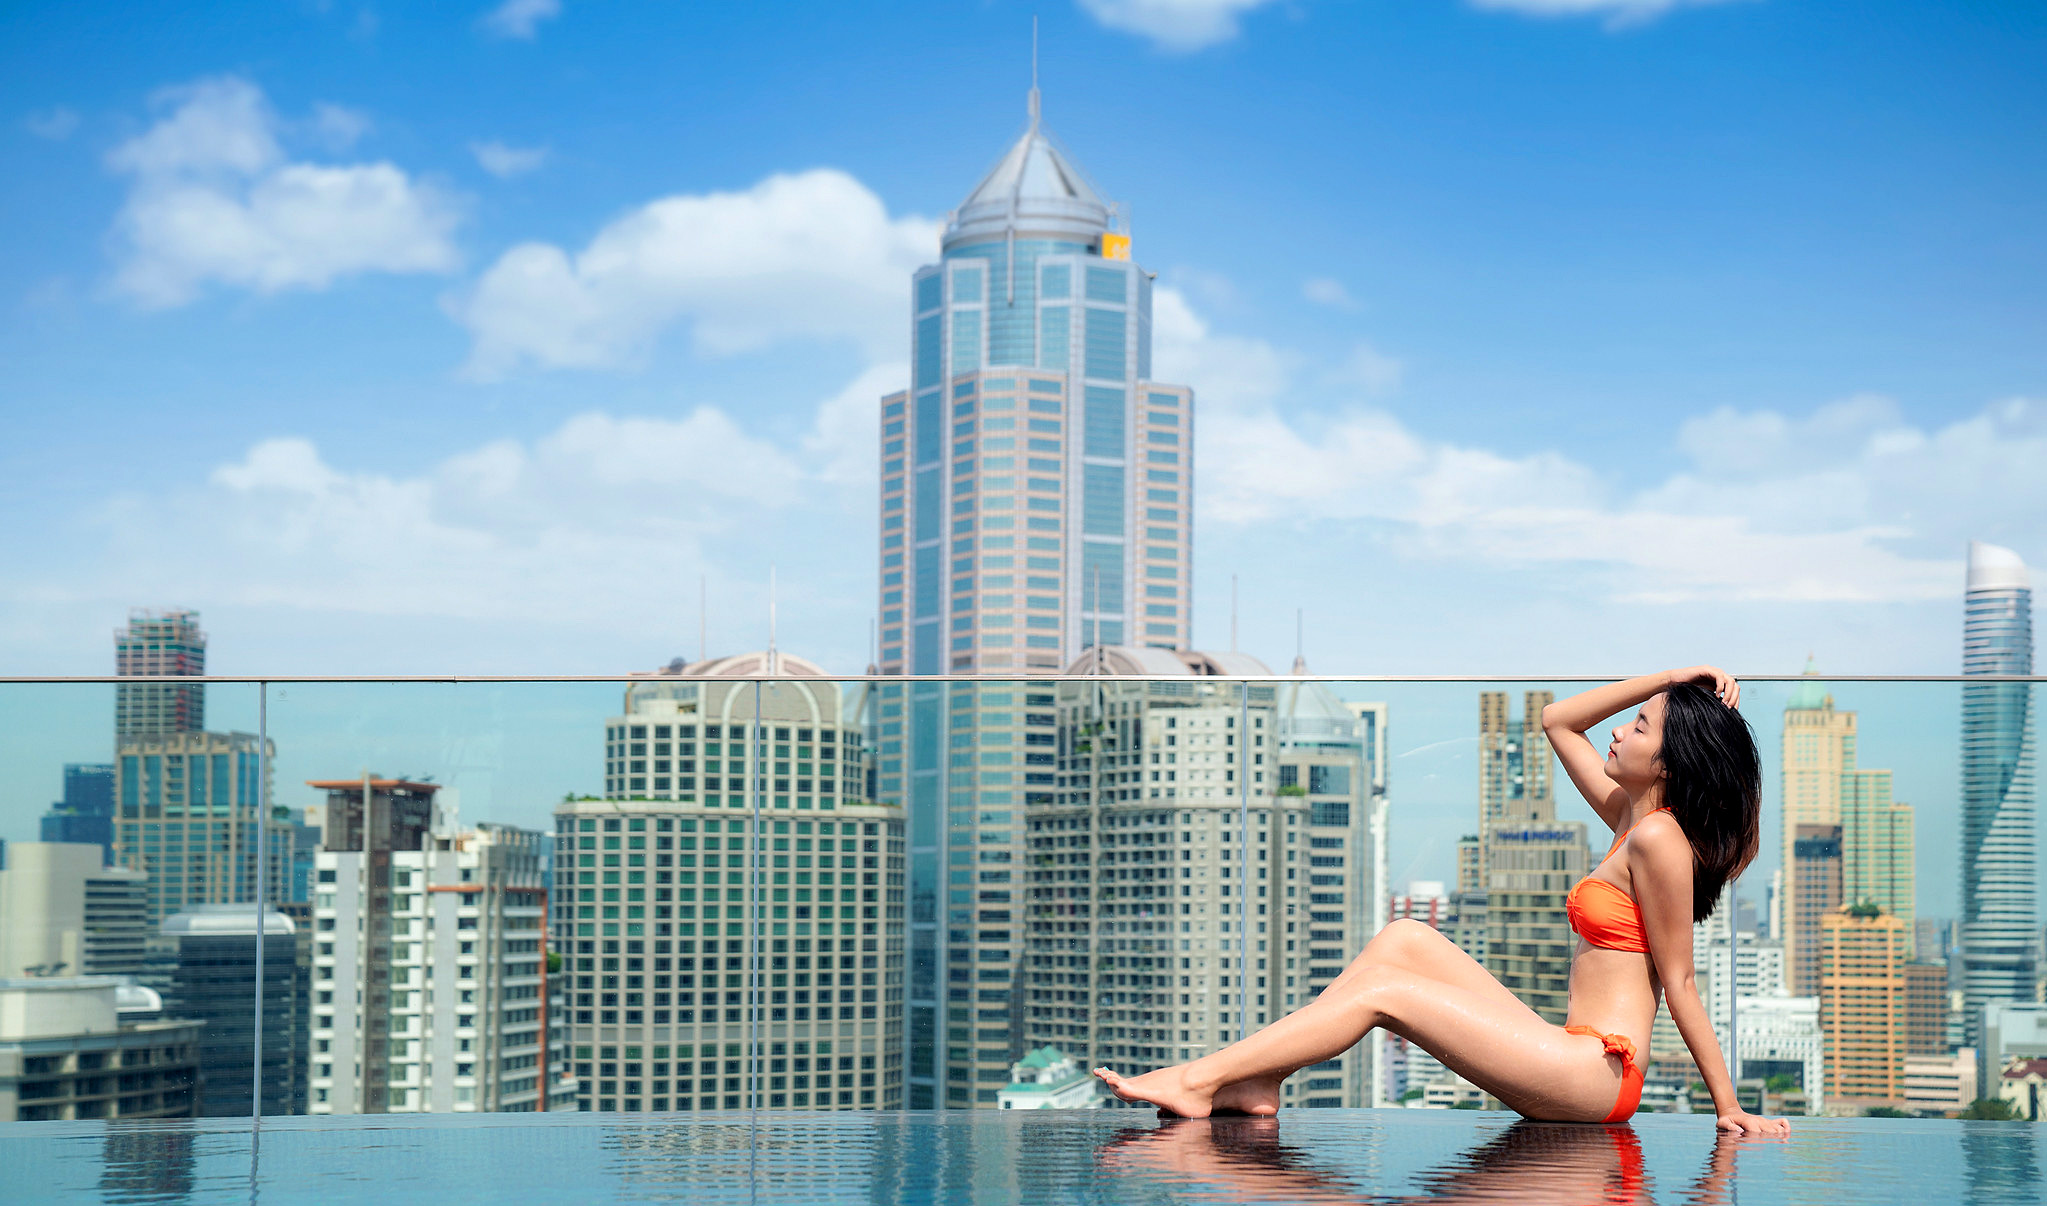 Relax in rooftop swimming pool with Bangkok city background by Anek Suwannaphoom.jpg